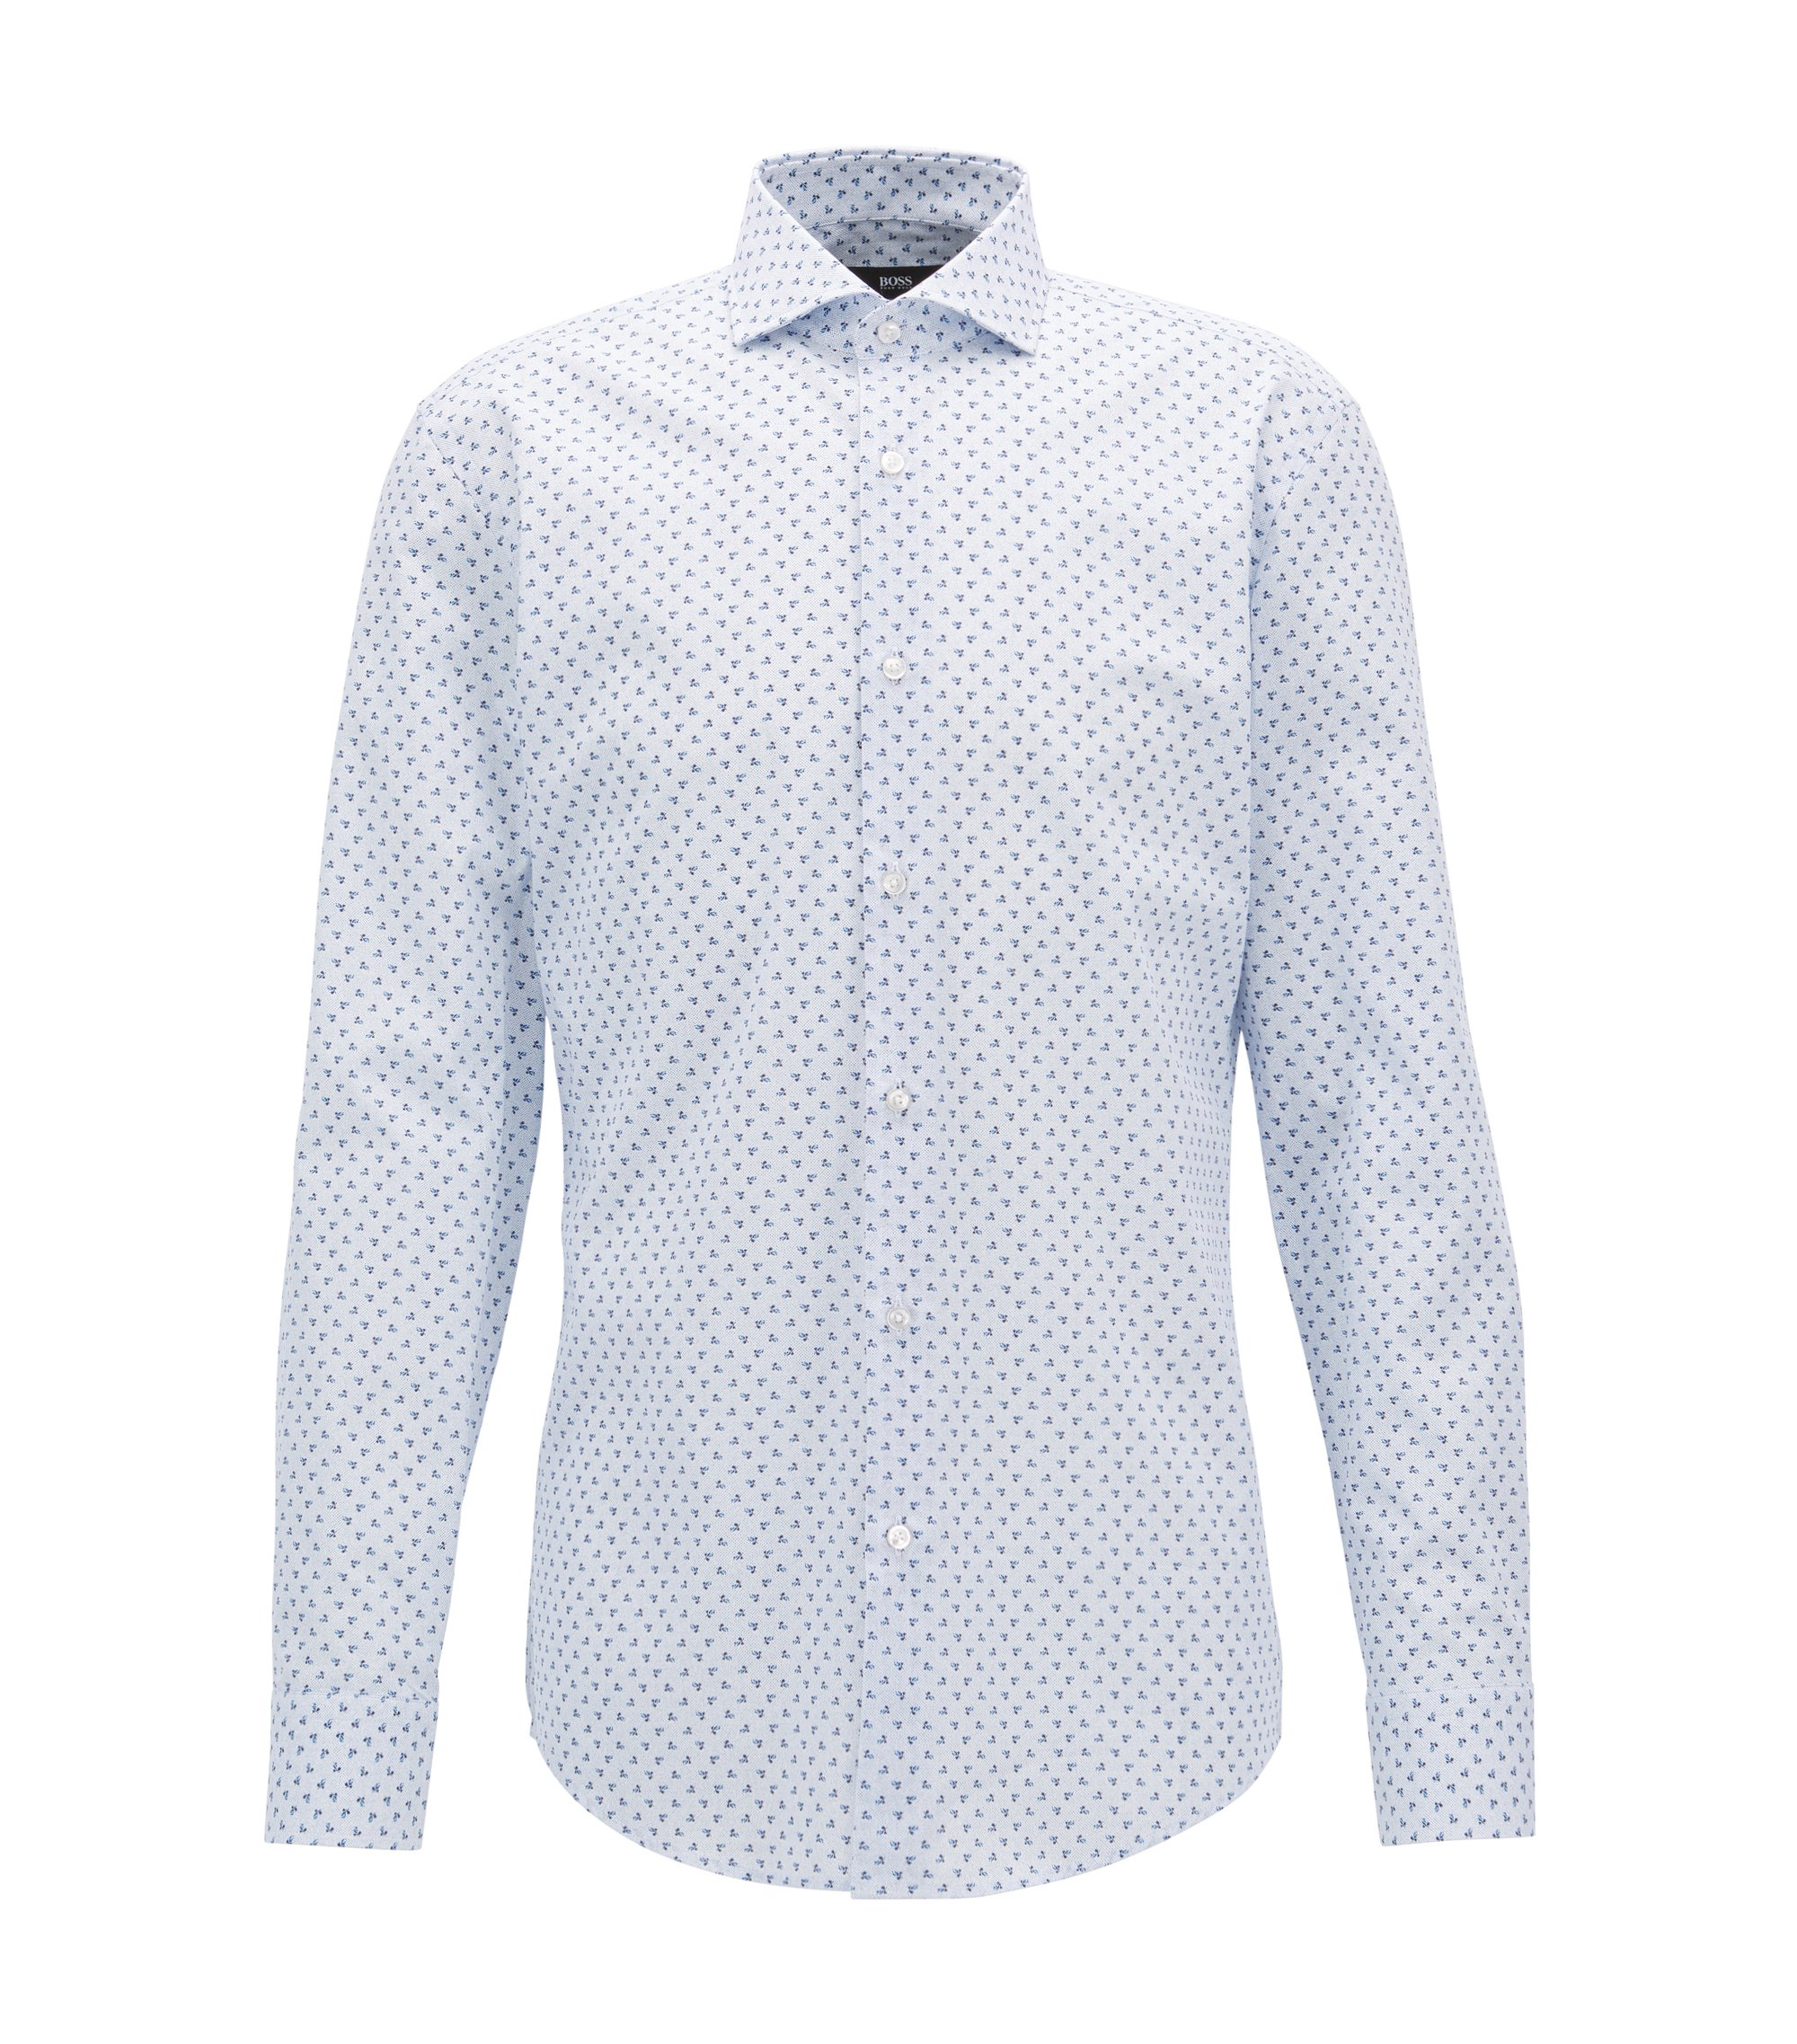 Floral-Print Cotton Dress Shirt, Slim Fit | Ismo, Light Blue